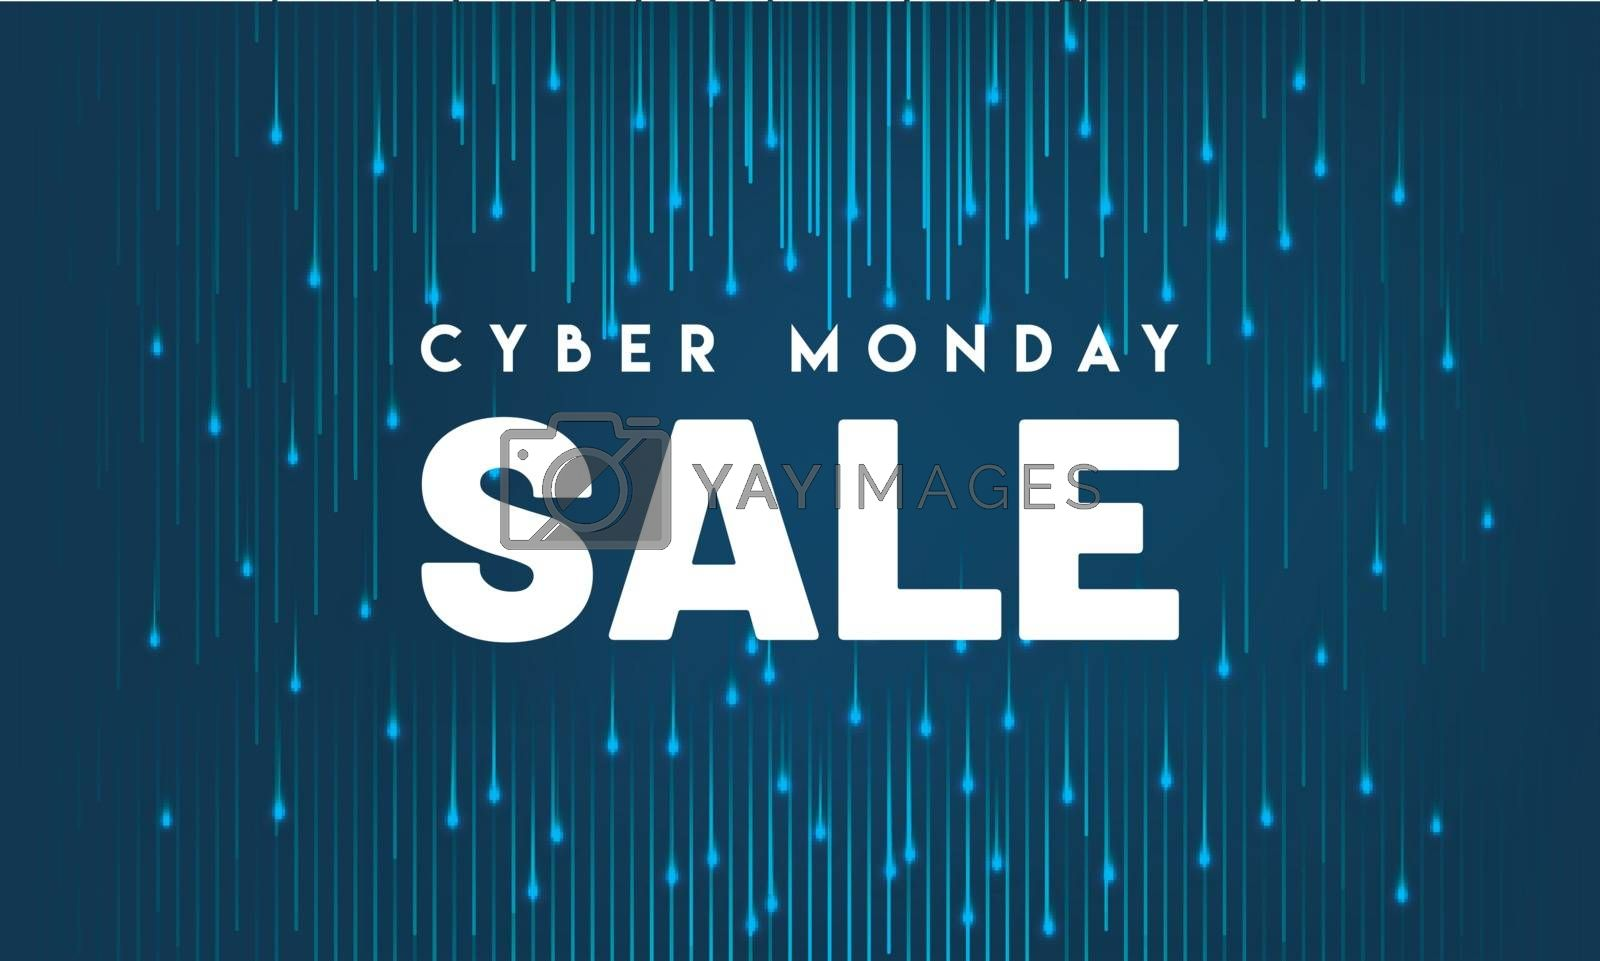 Poster or banner design for Cyber Monday Sale lettering on blue background with shiny digital rays.